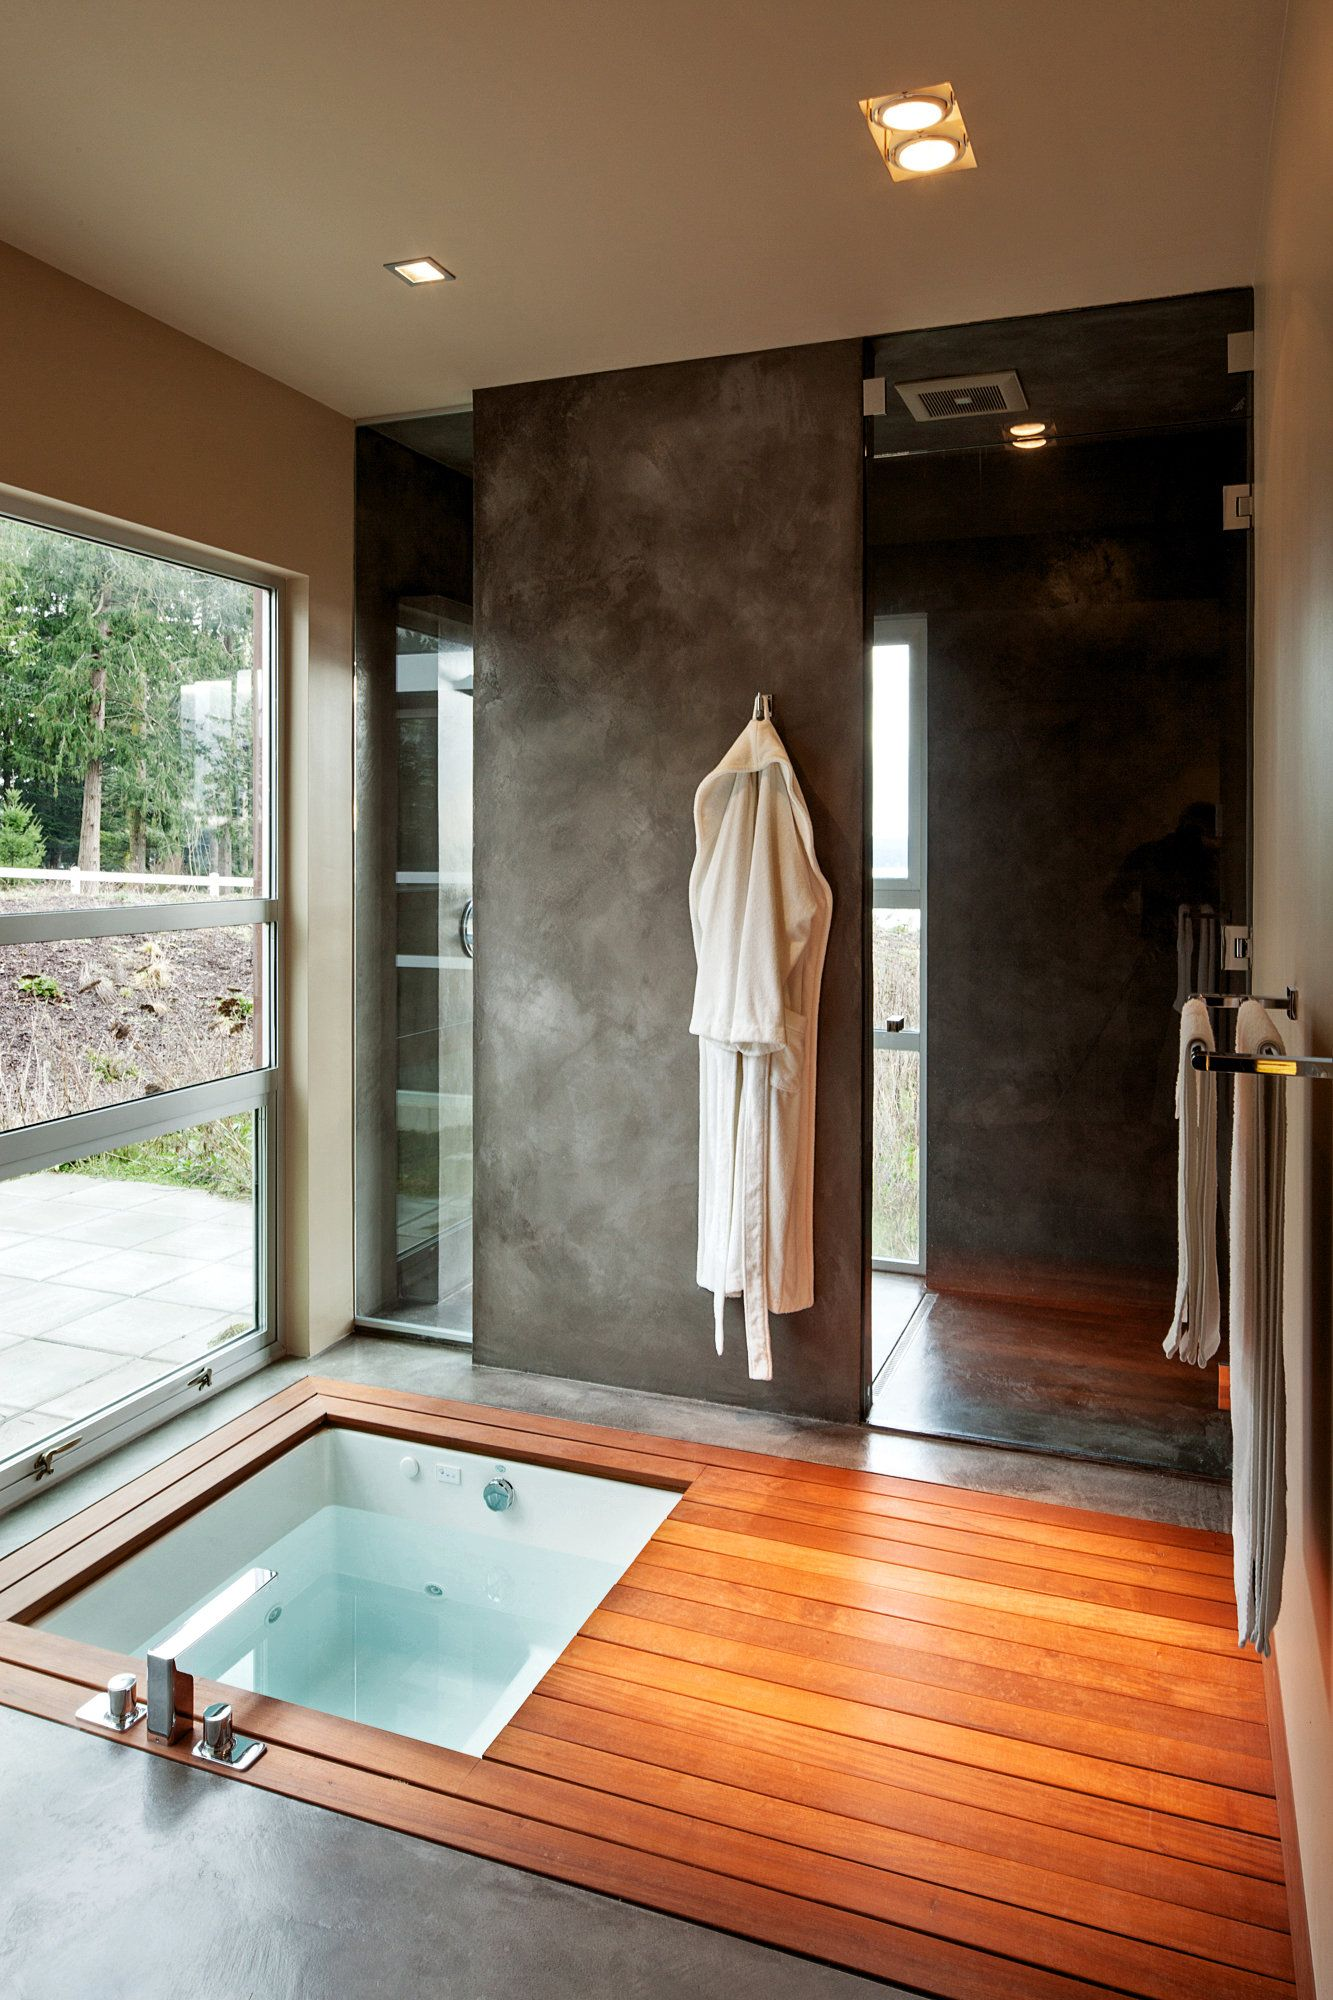 In Seattle The Long View Published 2014 Indoor Hot Tub Japanese Bathroom Design Hot Tub Room